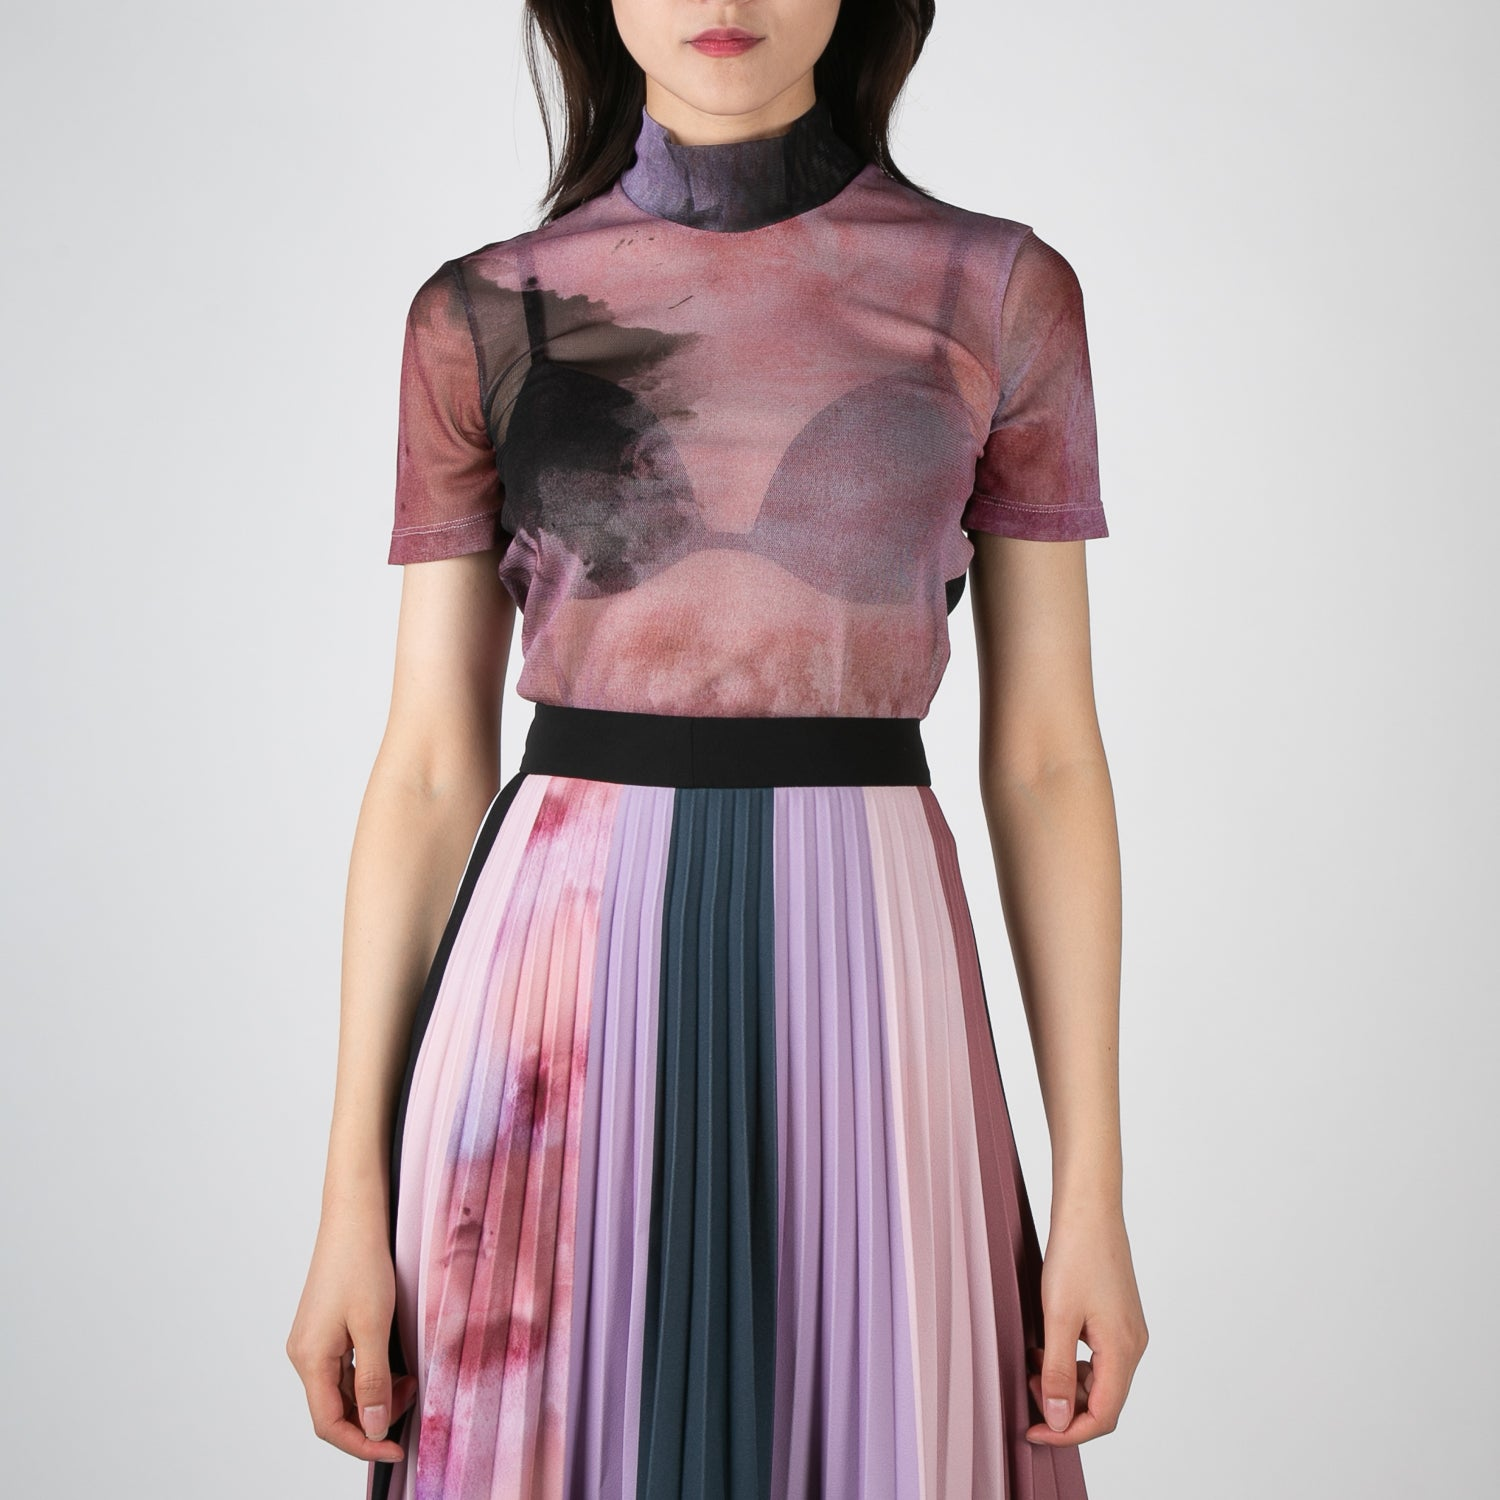 tie dye short sleeve mesh top by Ssheena at Secret Location